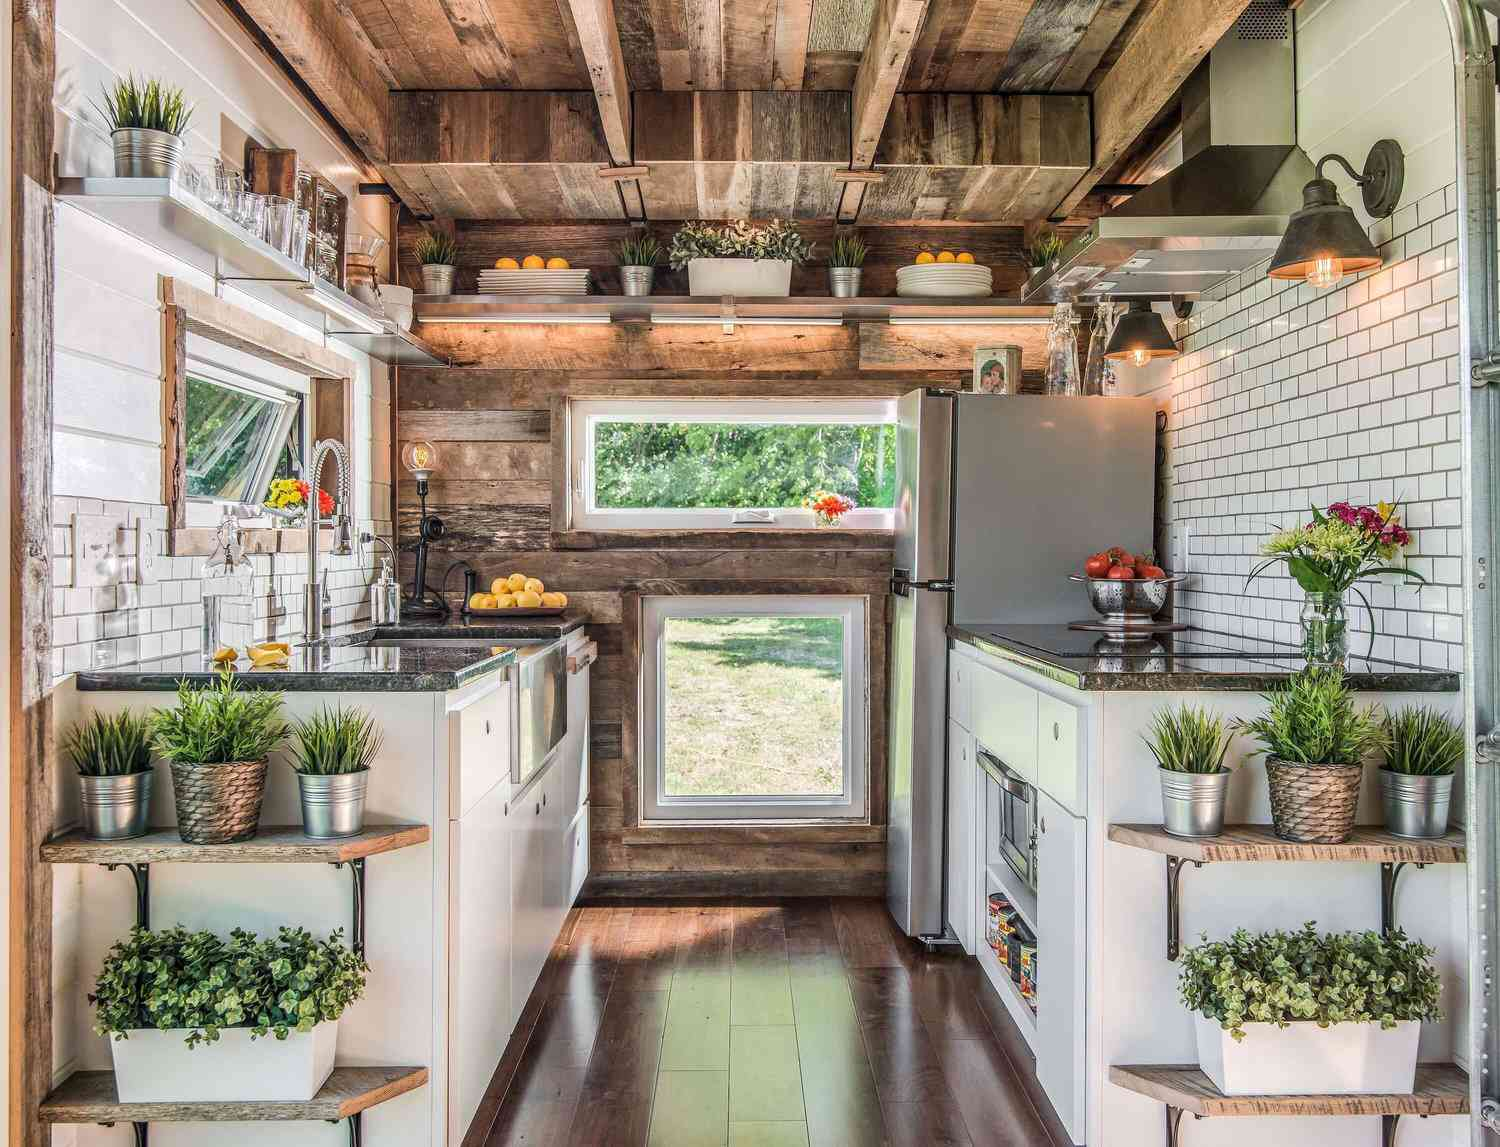 Tiny kitchen with full-sized appliances